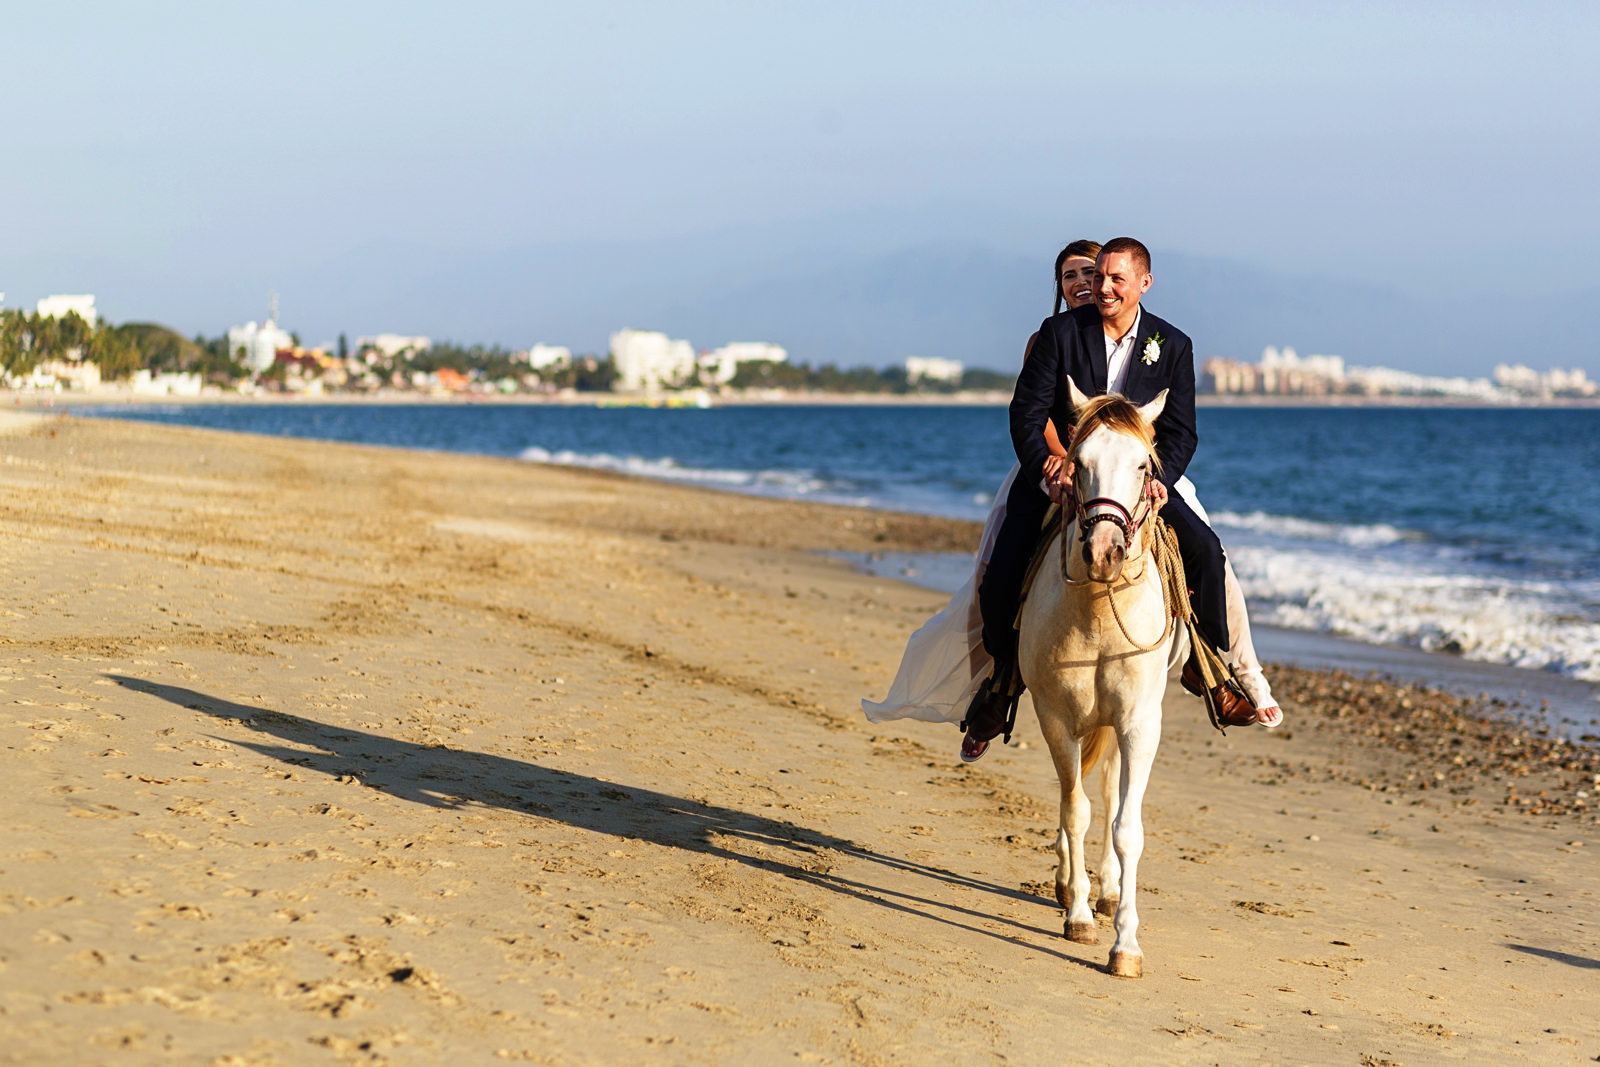 Bride and groom horse backridding on the beach